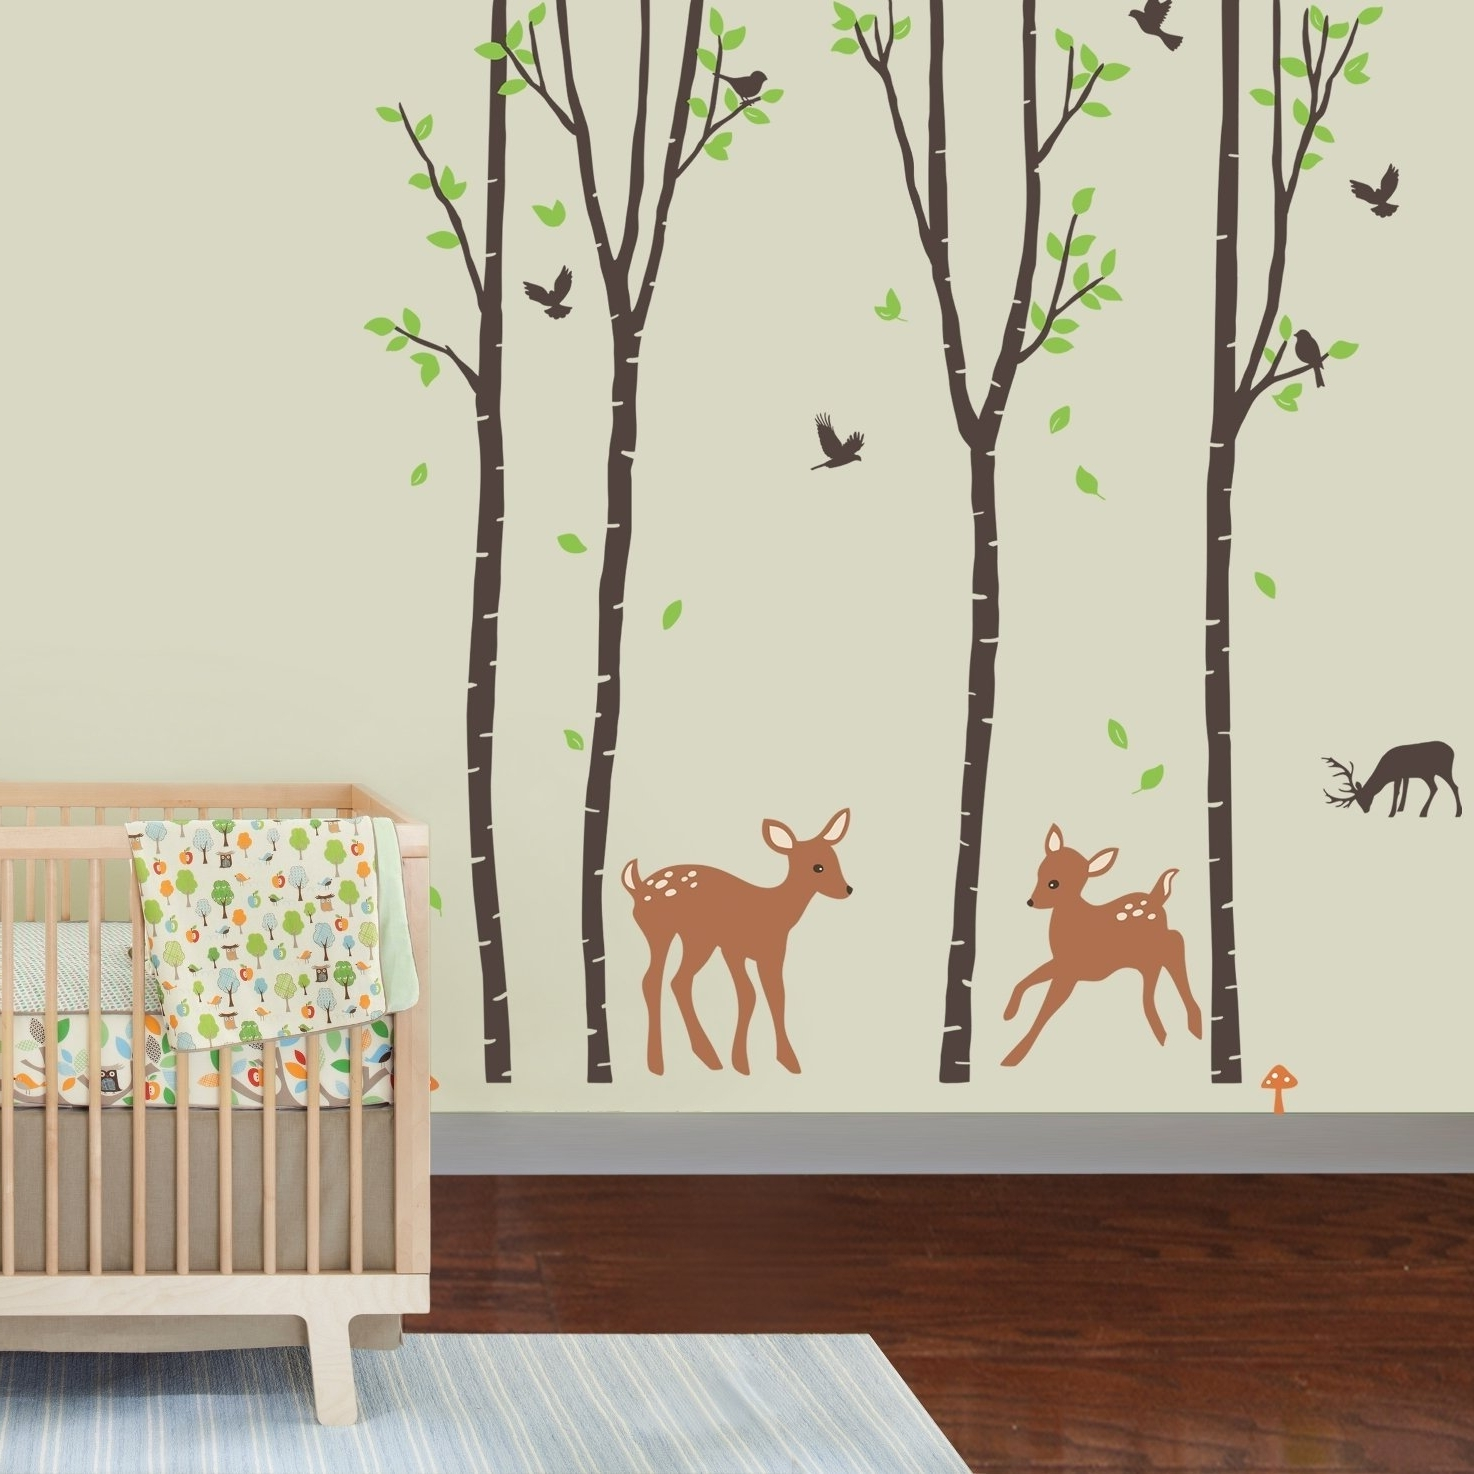 Nursery Wall Décor (View 15 of 15)